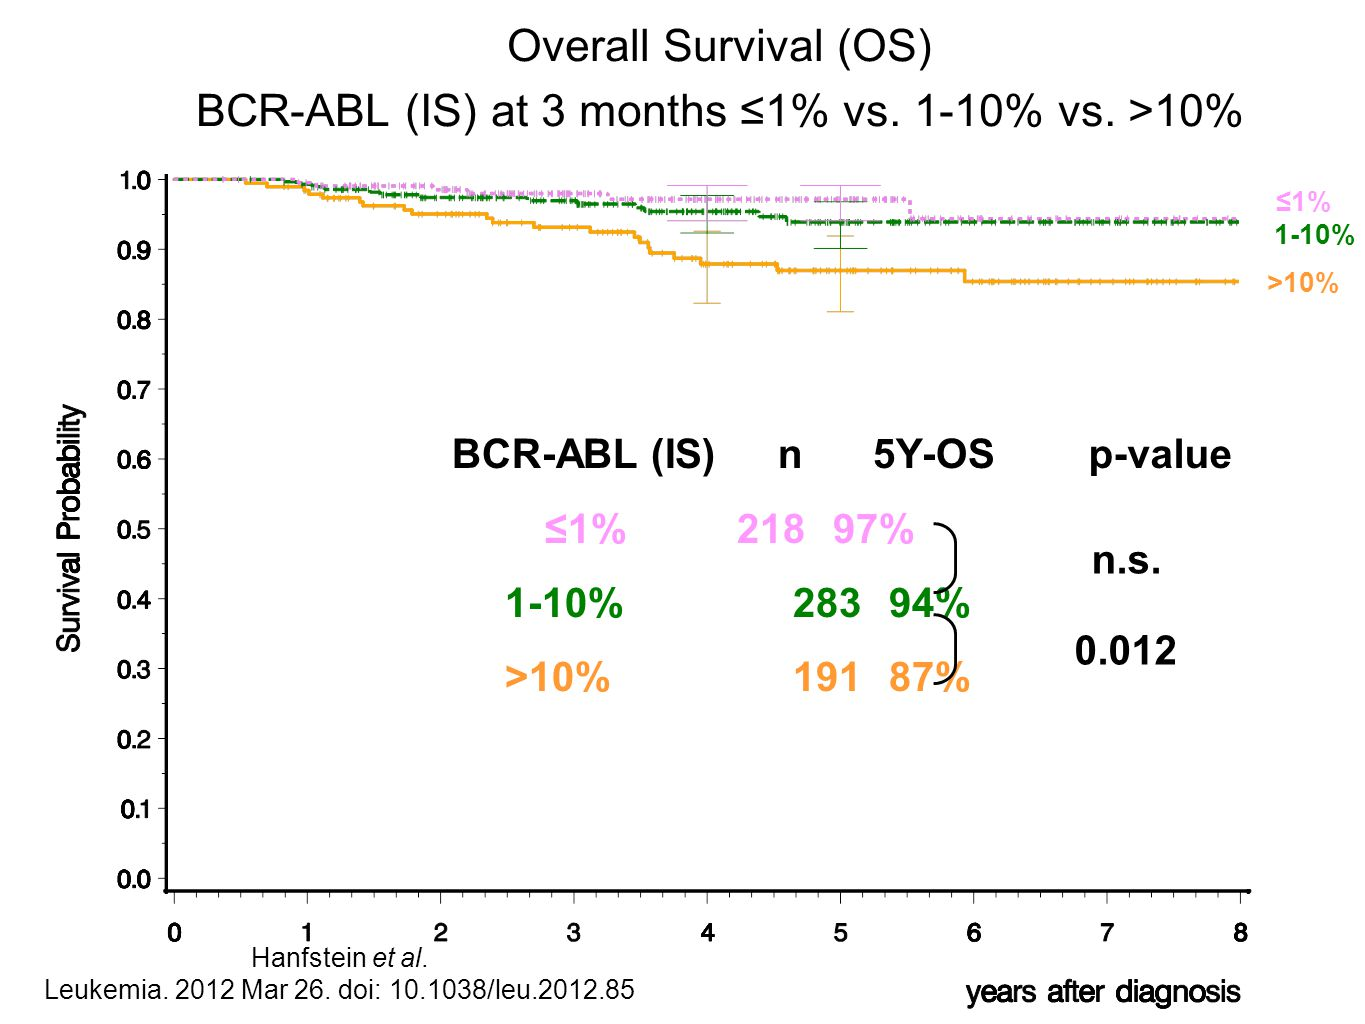 BCR-ABL (IS) n 5Y-OS ≤1% 21897% 1-10% 28394% >10% 19187% Overall Survival (OS) BCR-ABL (IS) at 3 months ≤1% vs. 1-10% vs. >10% n.s. 0.012 p-value ≤1%